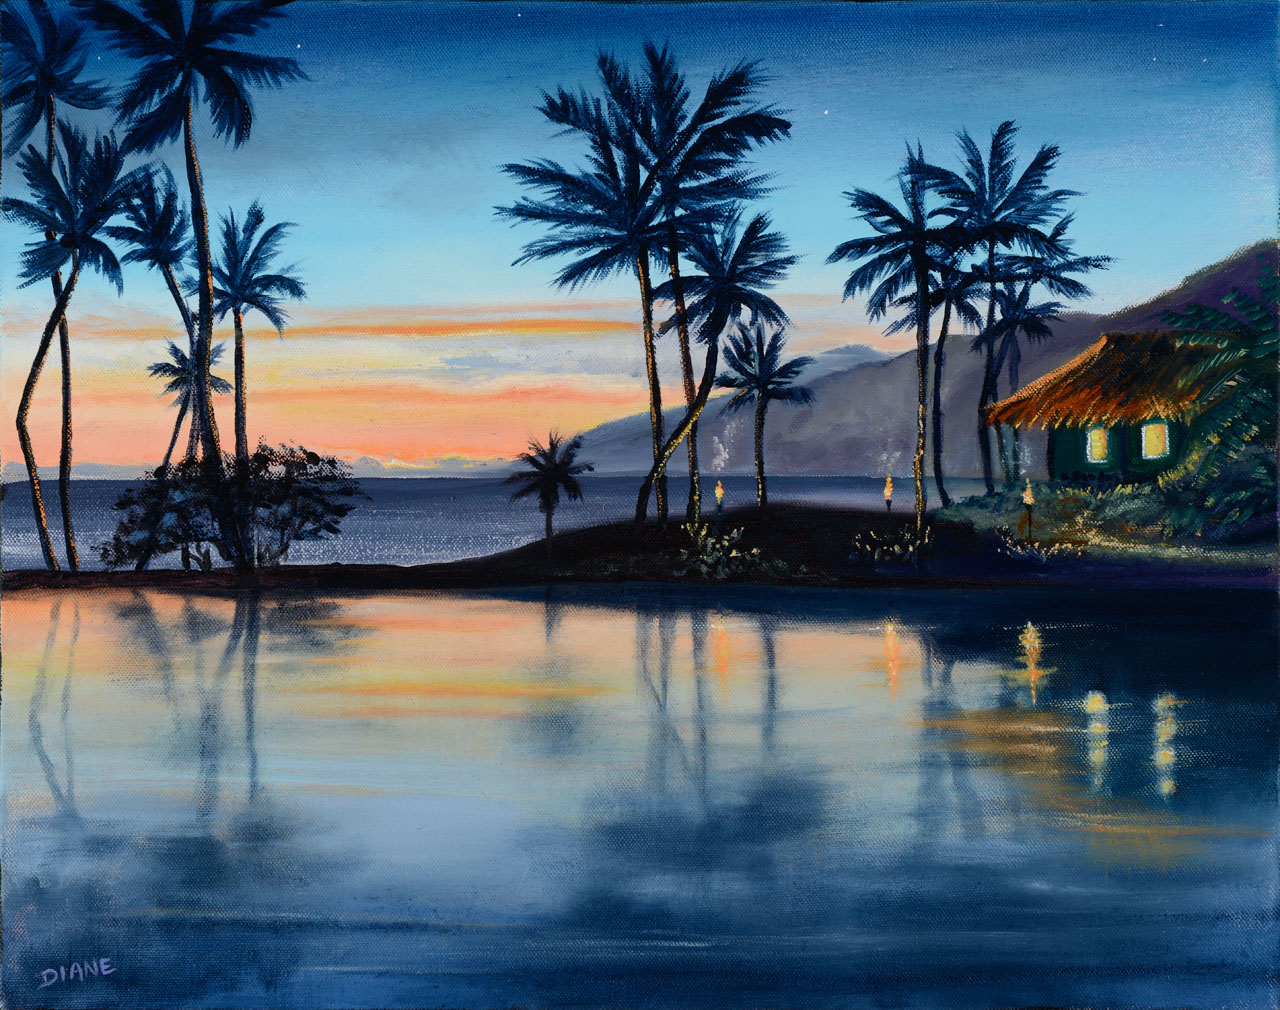 Lagoon at Sunset Wailea 8 x 10 print on watercolor paper Diane Snoey Appler